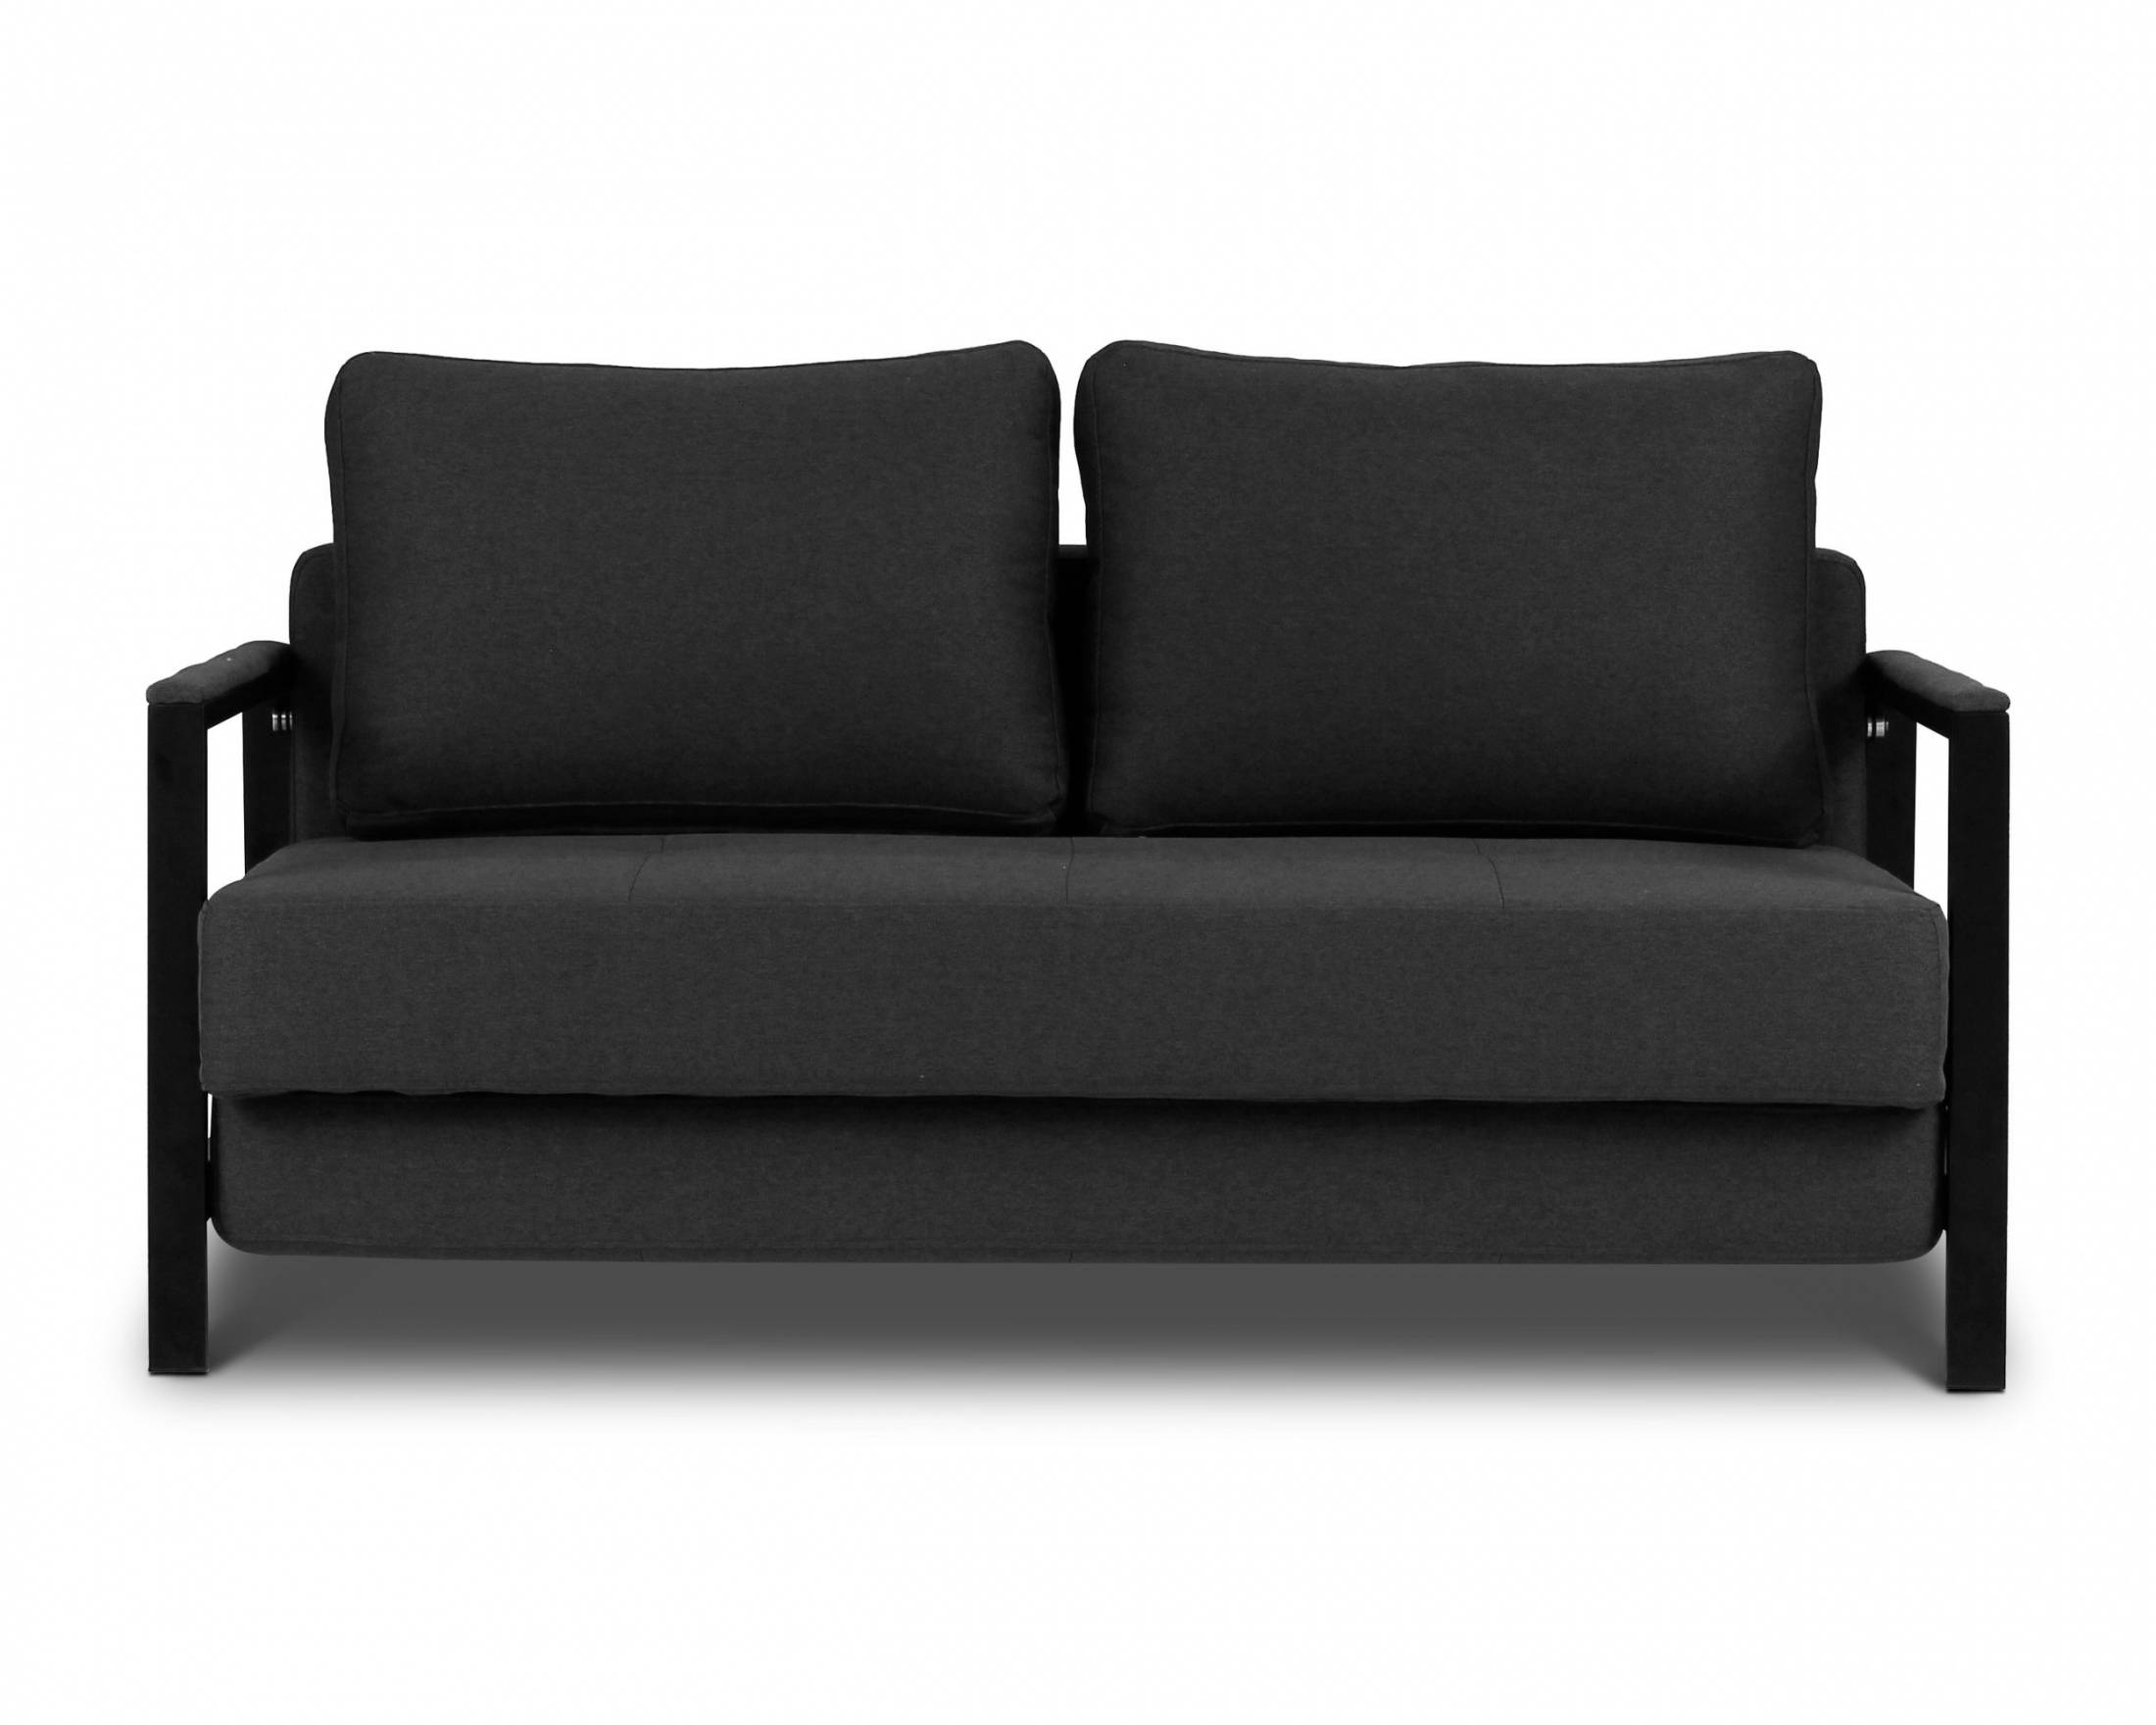 Kobe - 2 Seat Sofa Bed | Loungelovers for Black 2 Seater Sofas (Image 17 of 30)